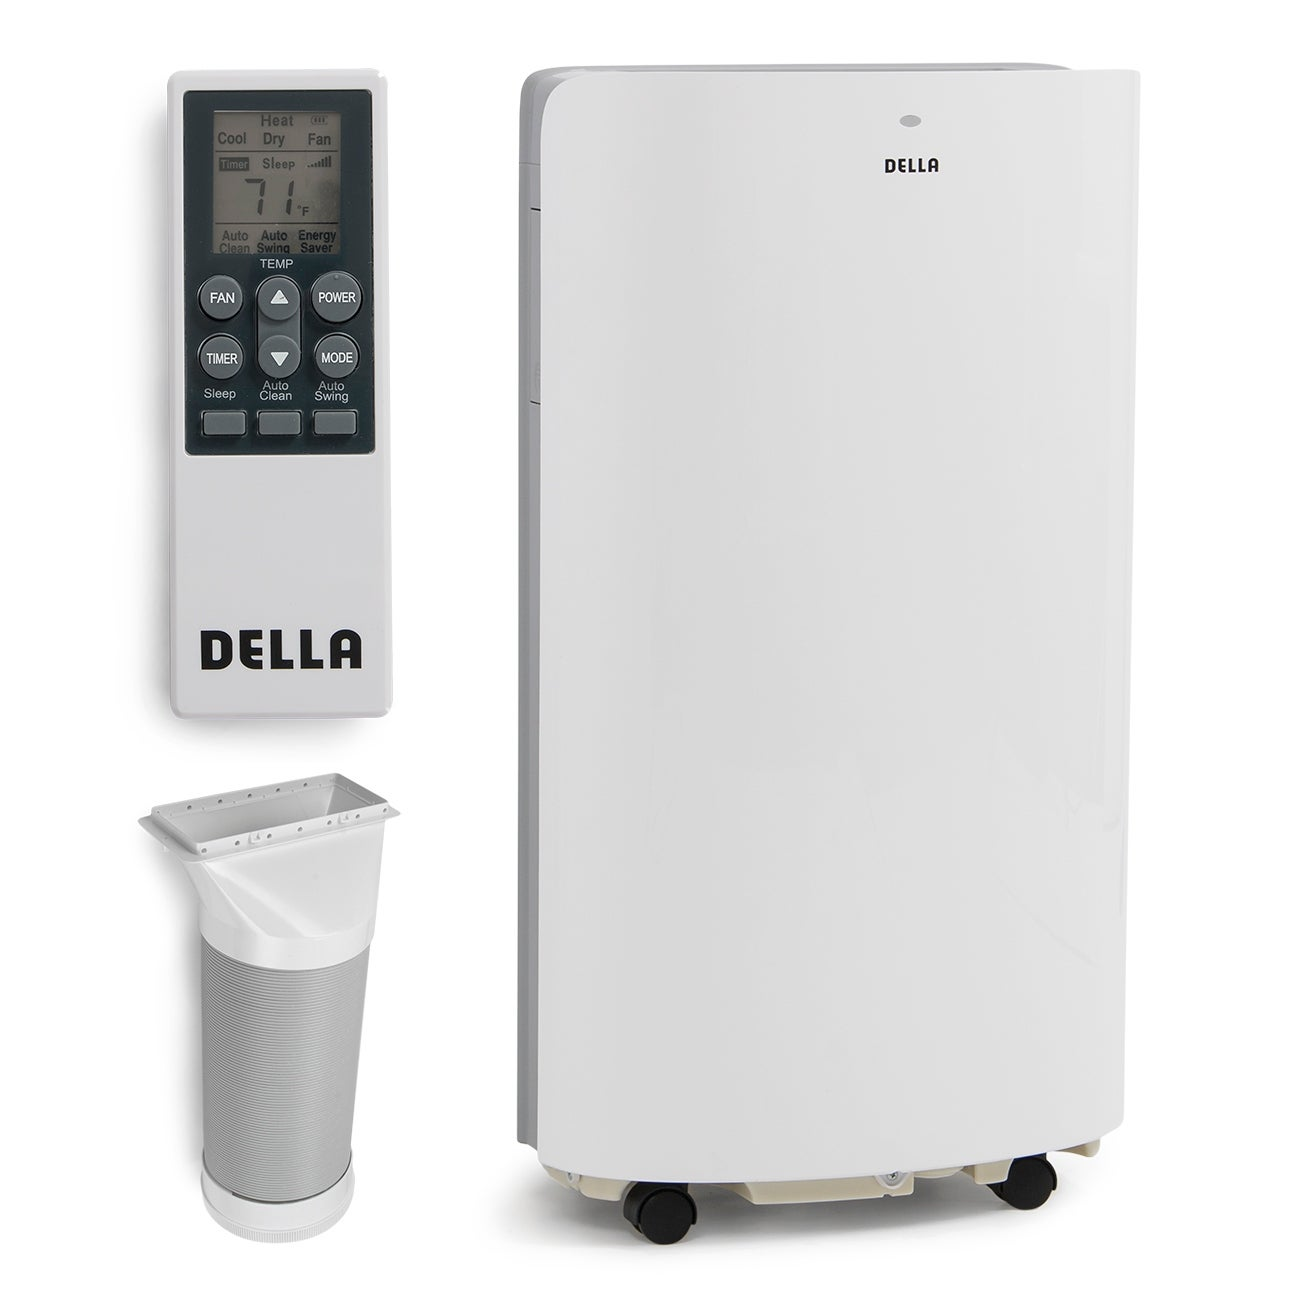 Shop Della 14,000 BTU Evaporative Portable Air Conditioner / Heater /  Dehumidifier / Cooling Function LED Panel Control - Free Shipping Today ...